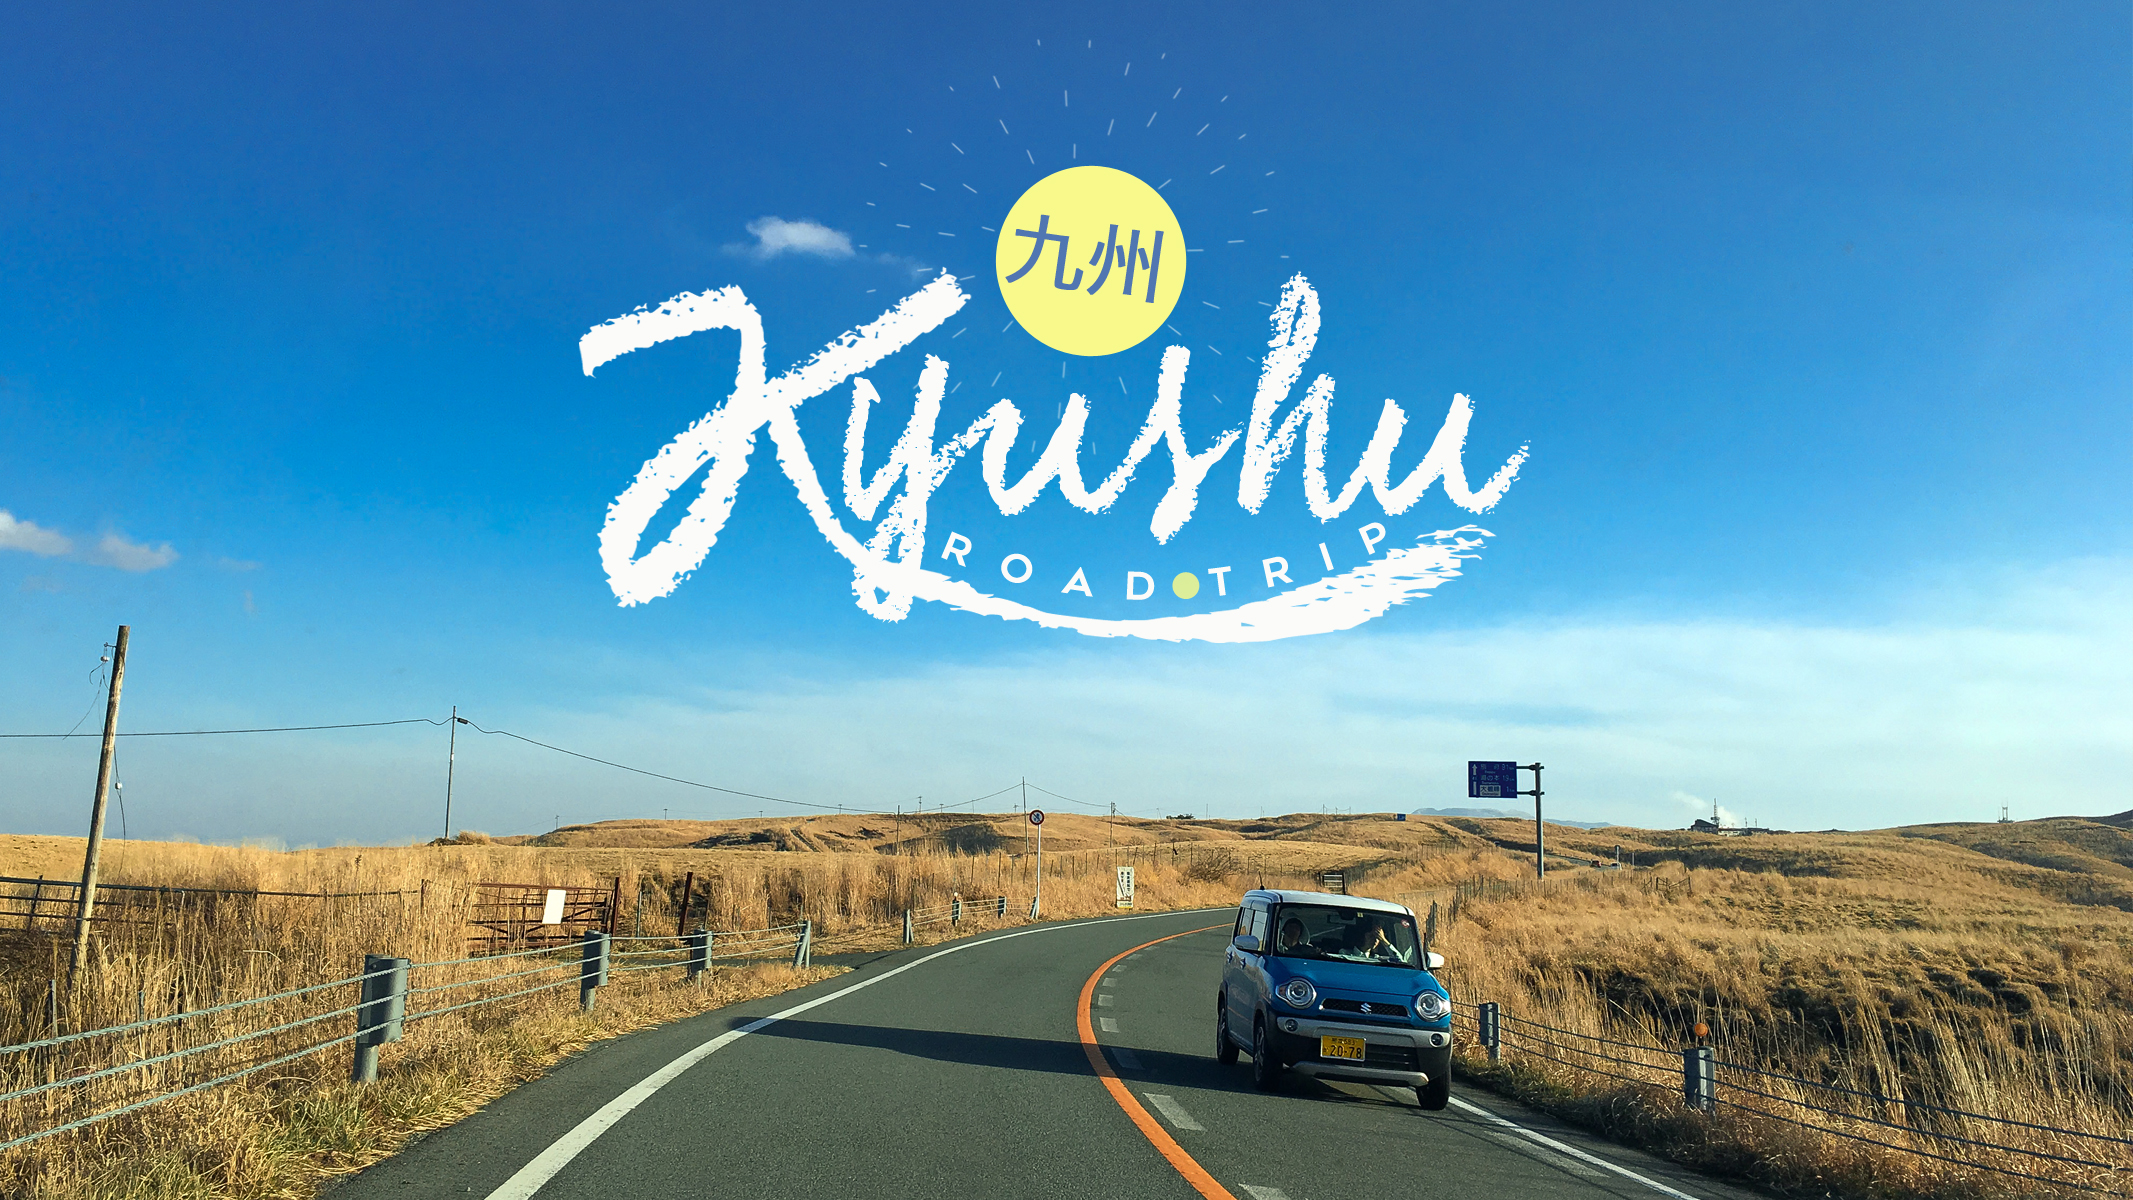 Kyushu Road Trip,Memories of Japan!